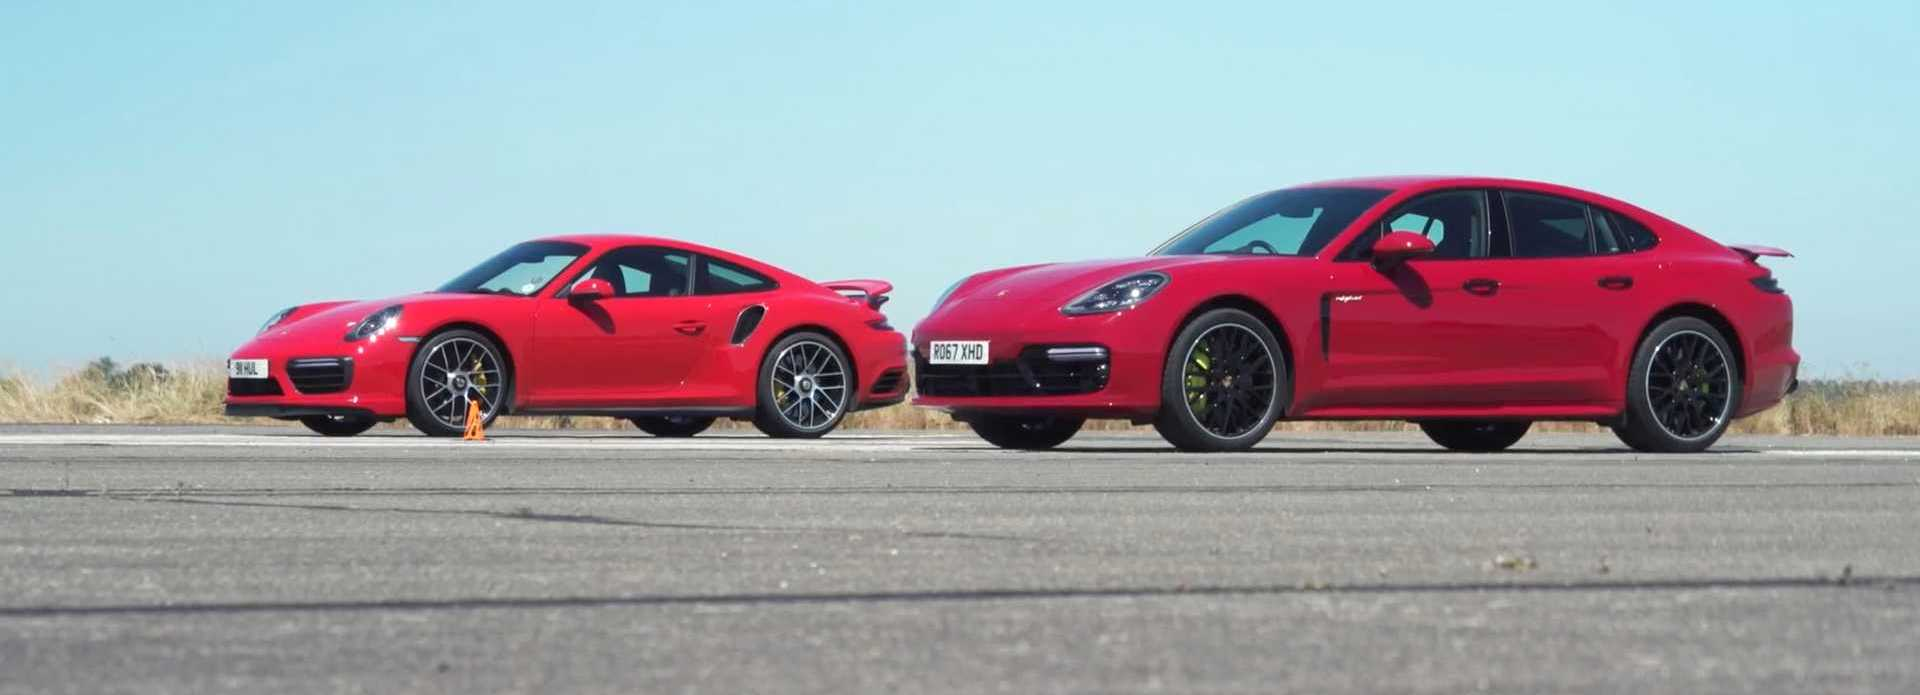 Porsche Panamera Turbo S E-Hybrid Drag Races The 911 Turbo S